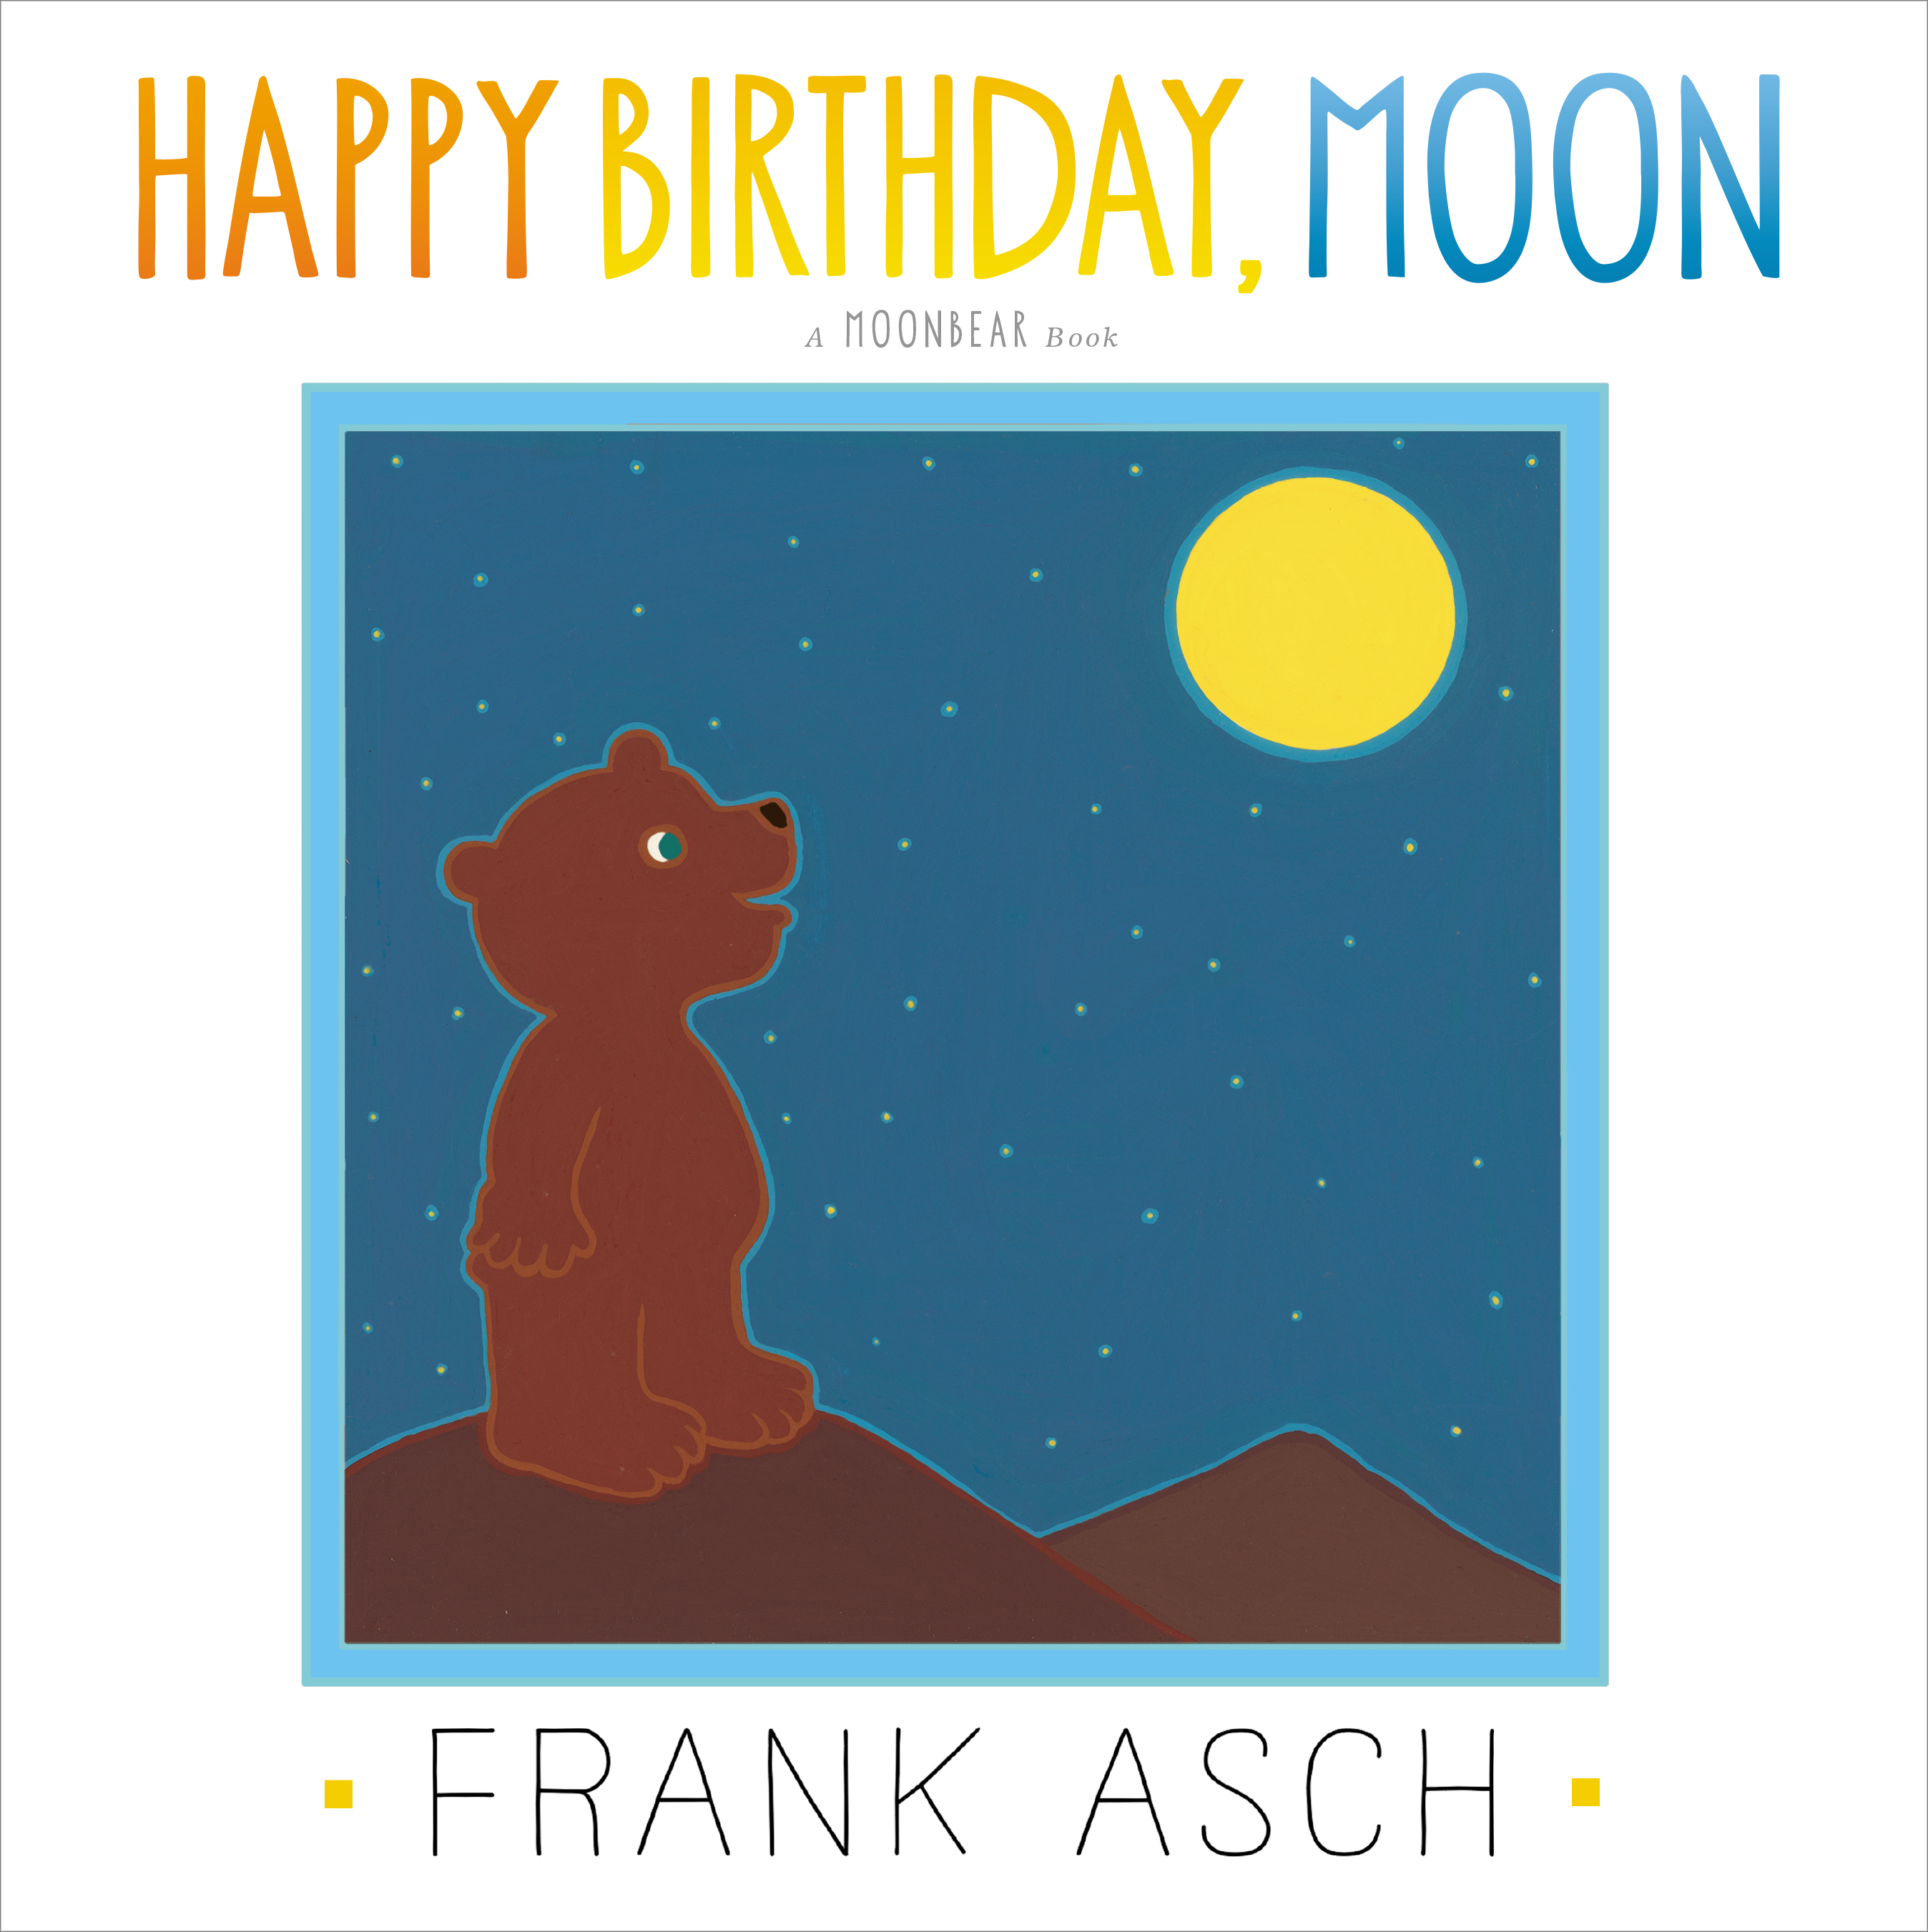 Happy-birthday-moon-9781442494008_hr